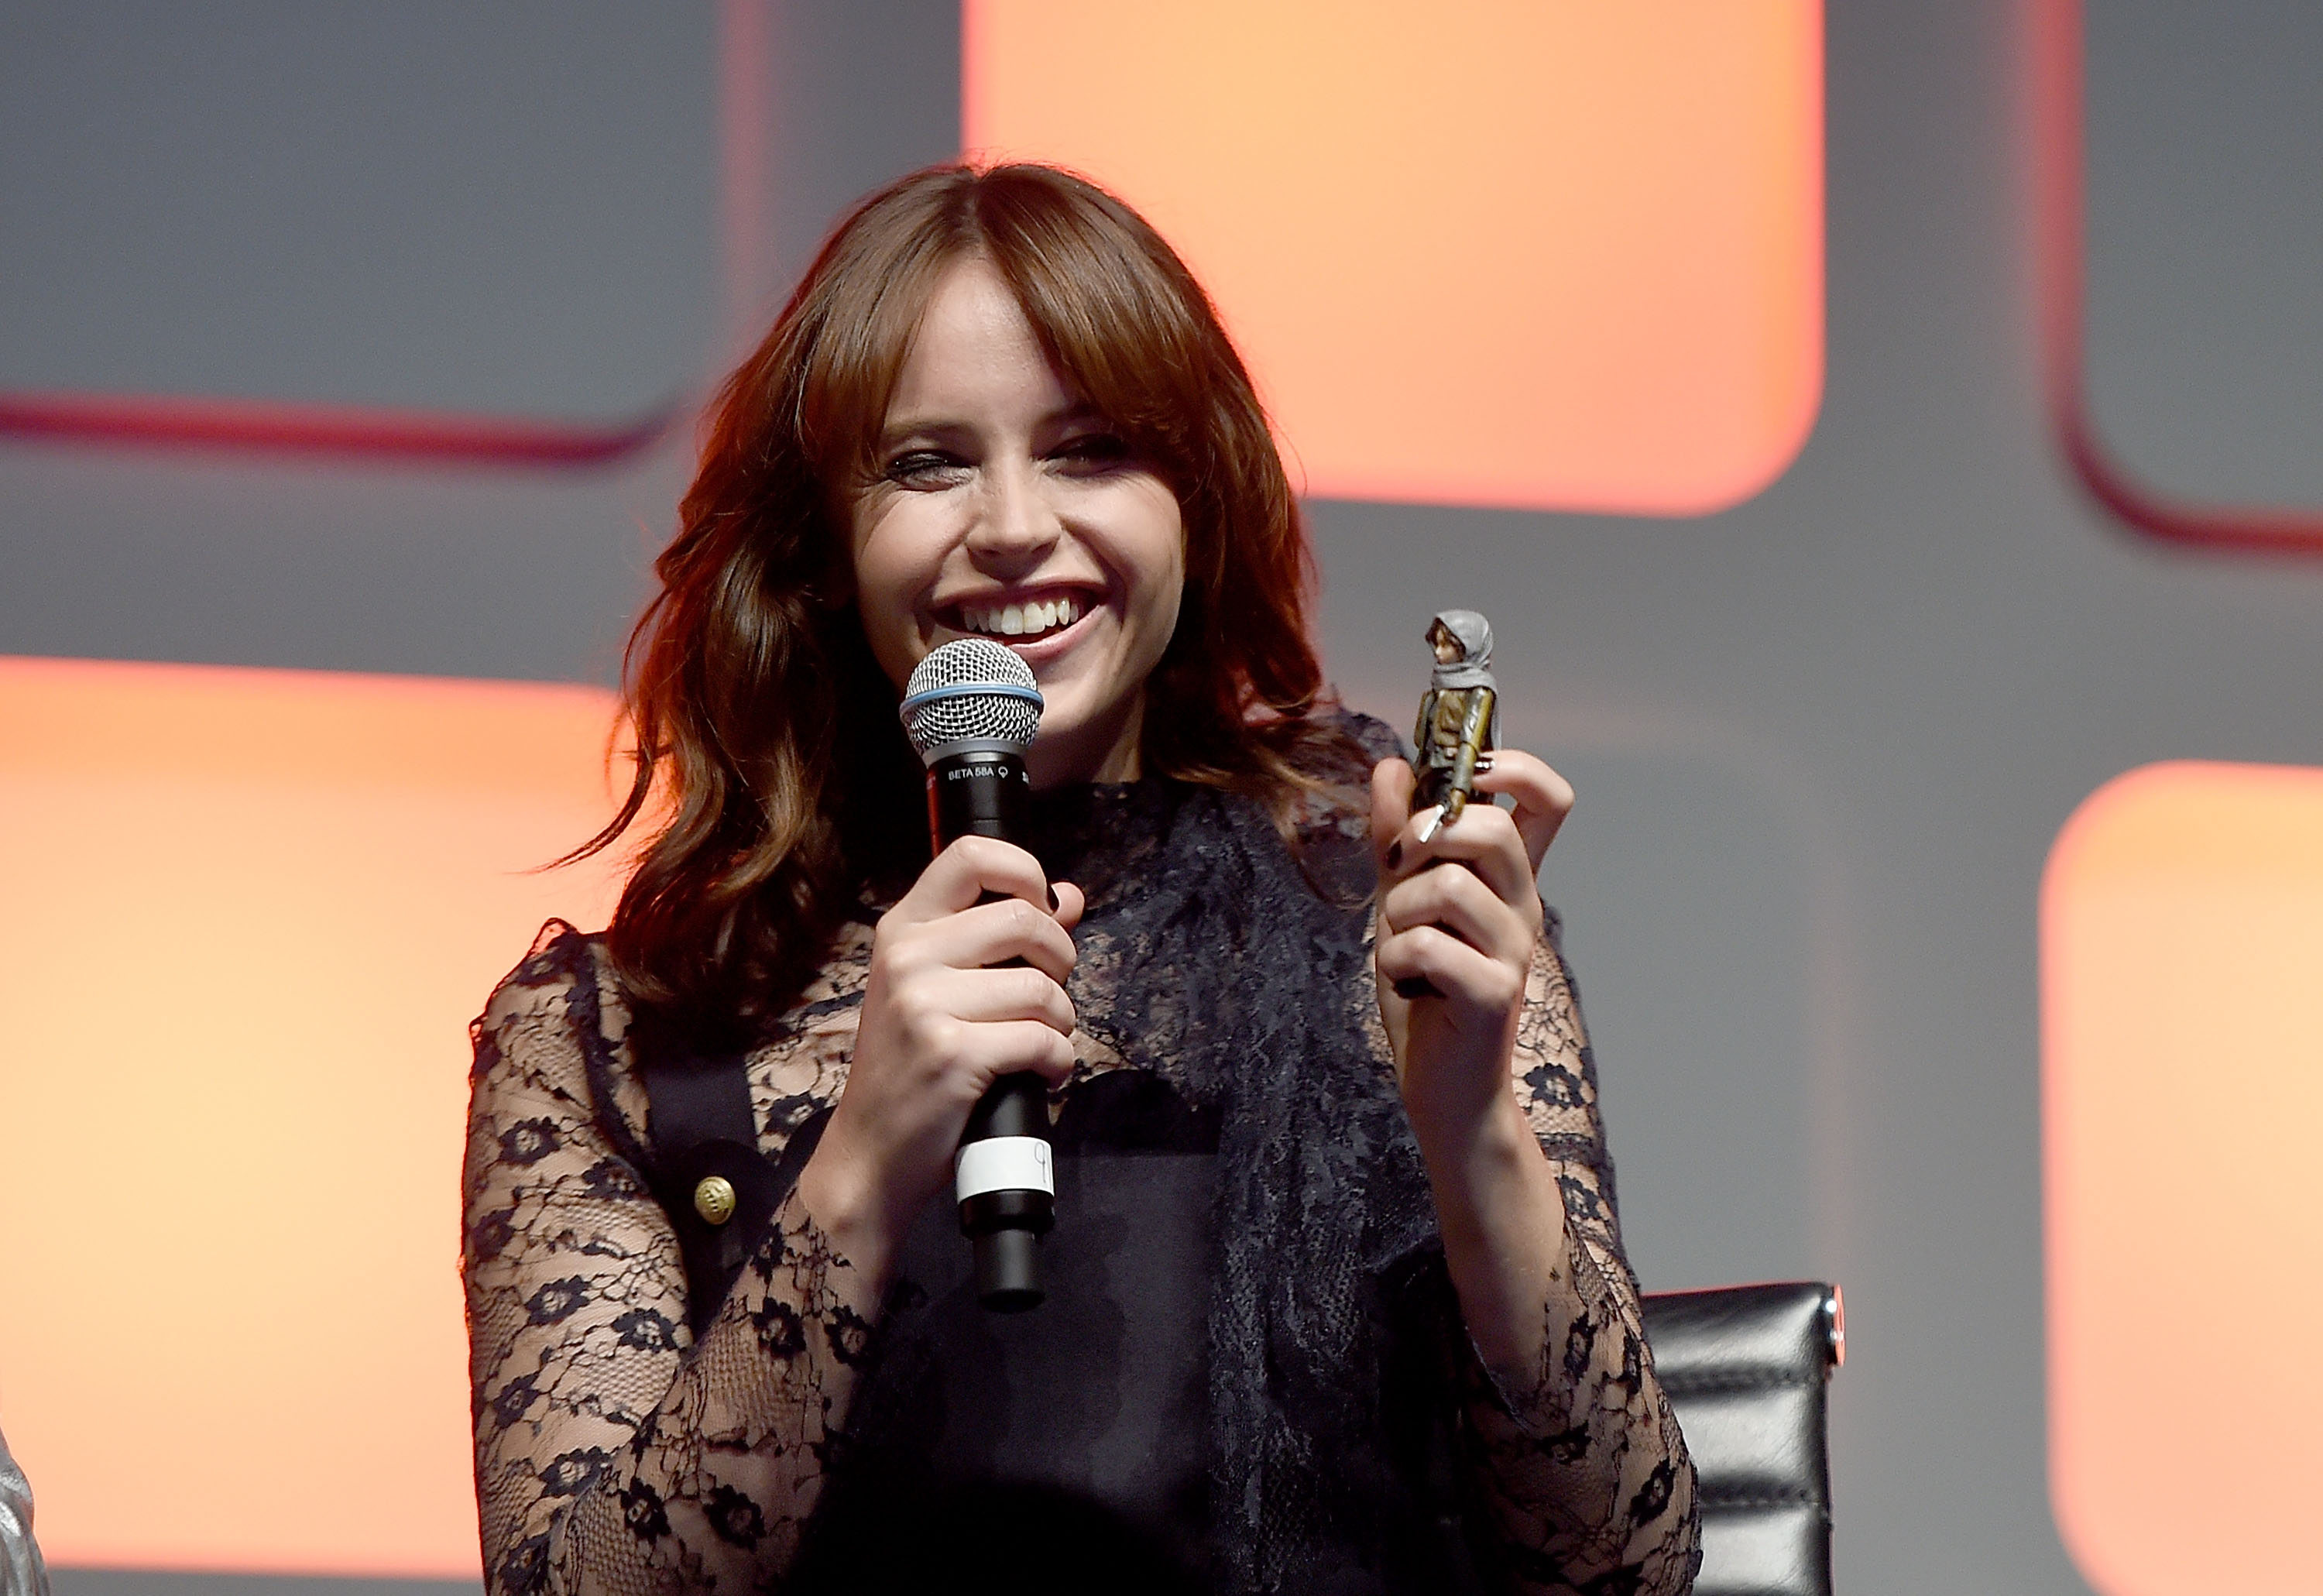 Rogue One: A Star Wars Story Jyn Erso Action Figure Revealed